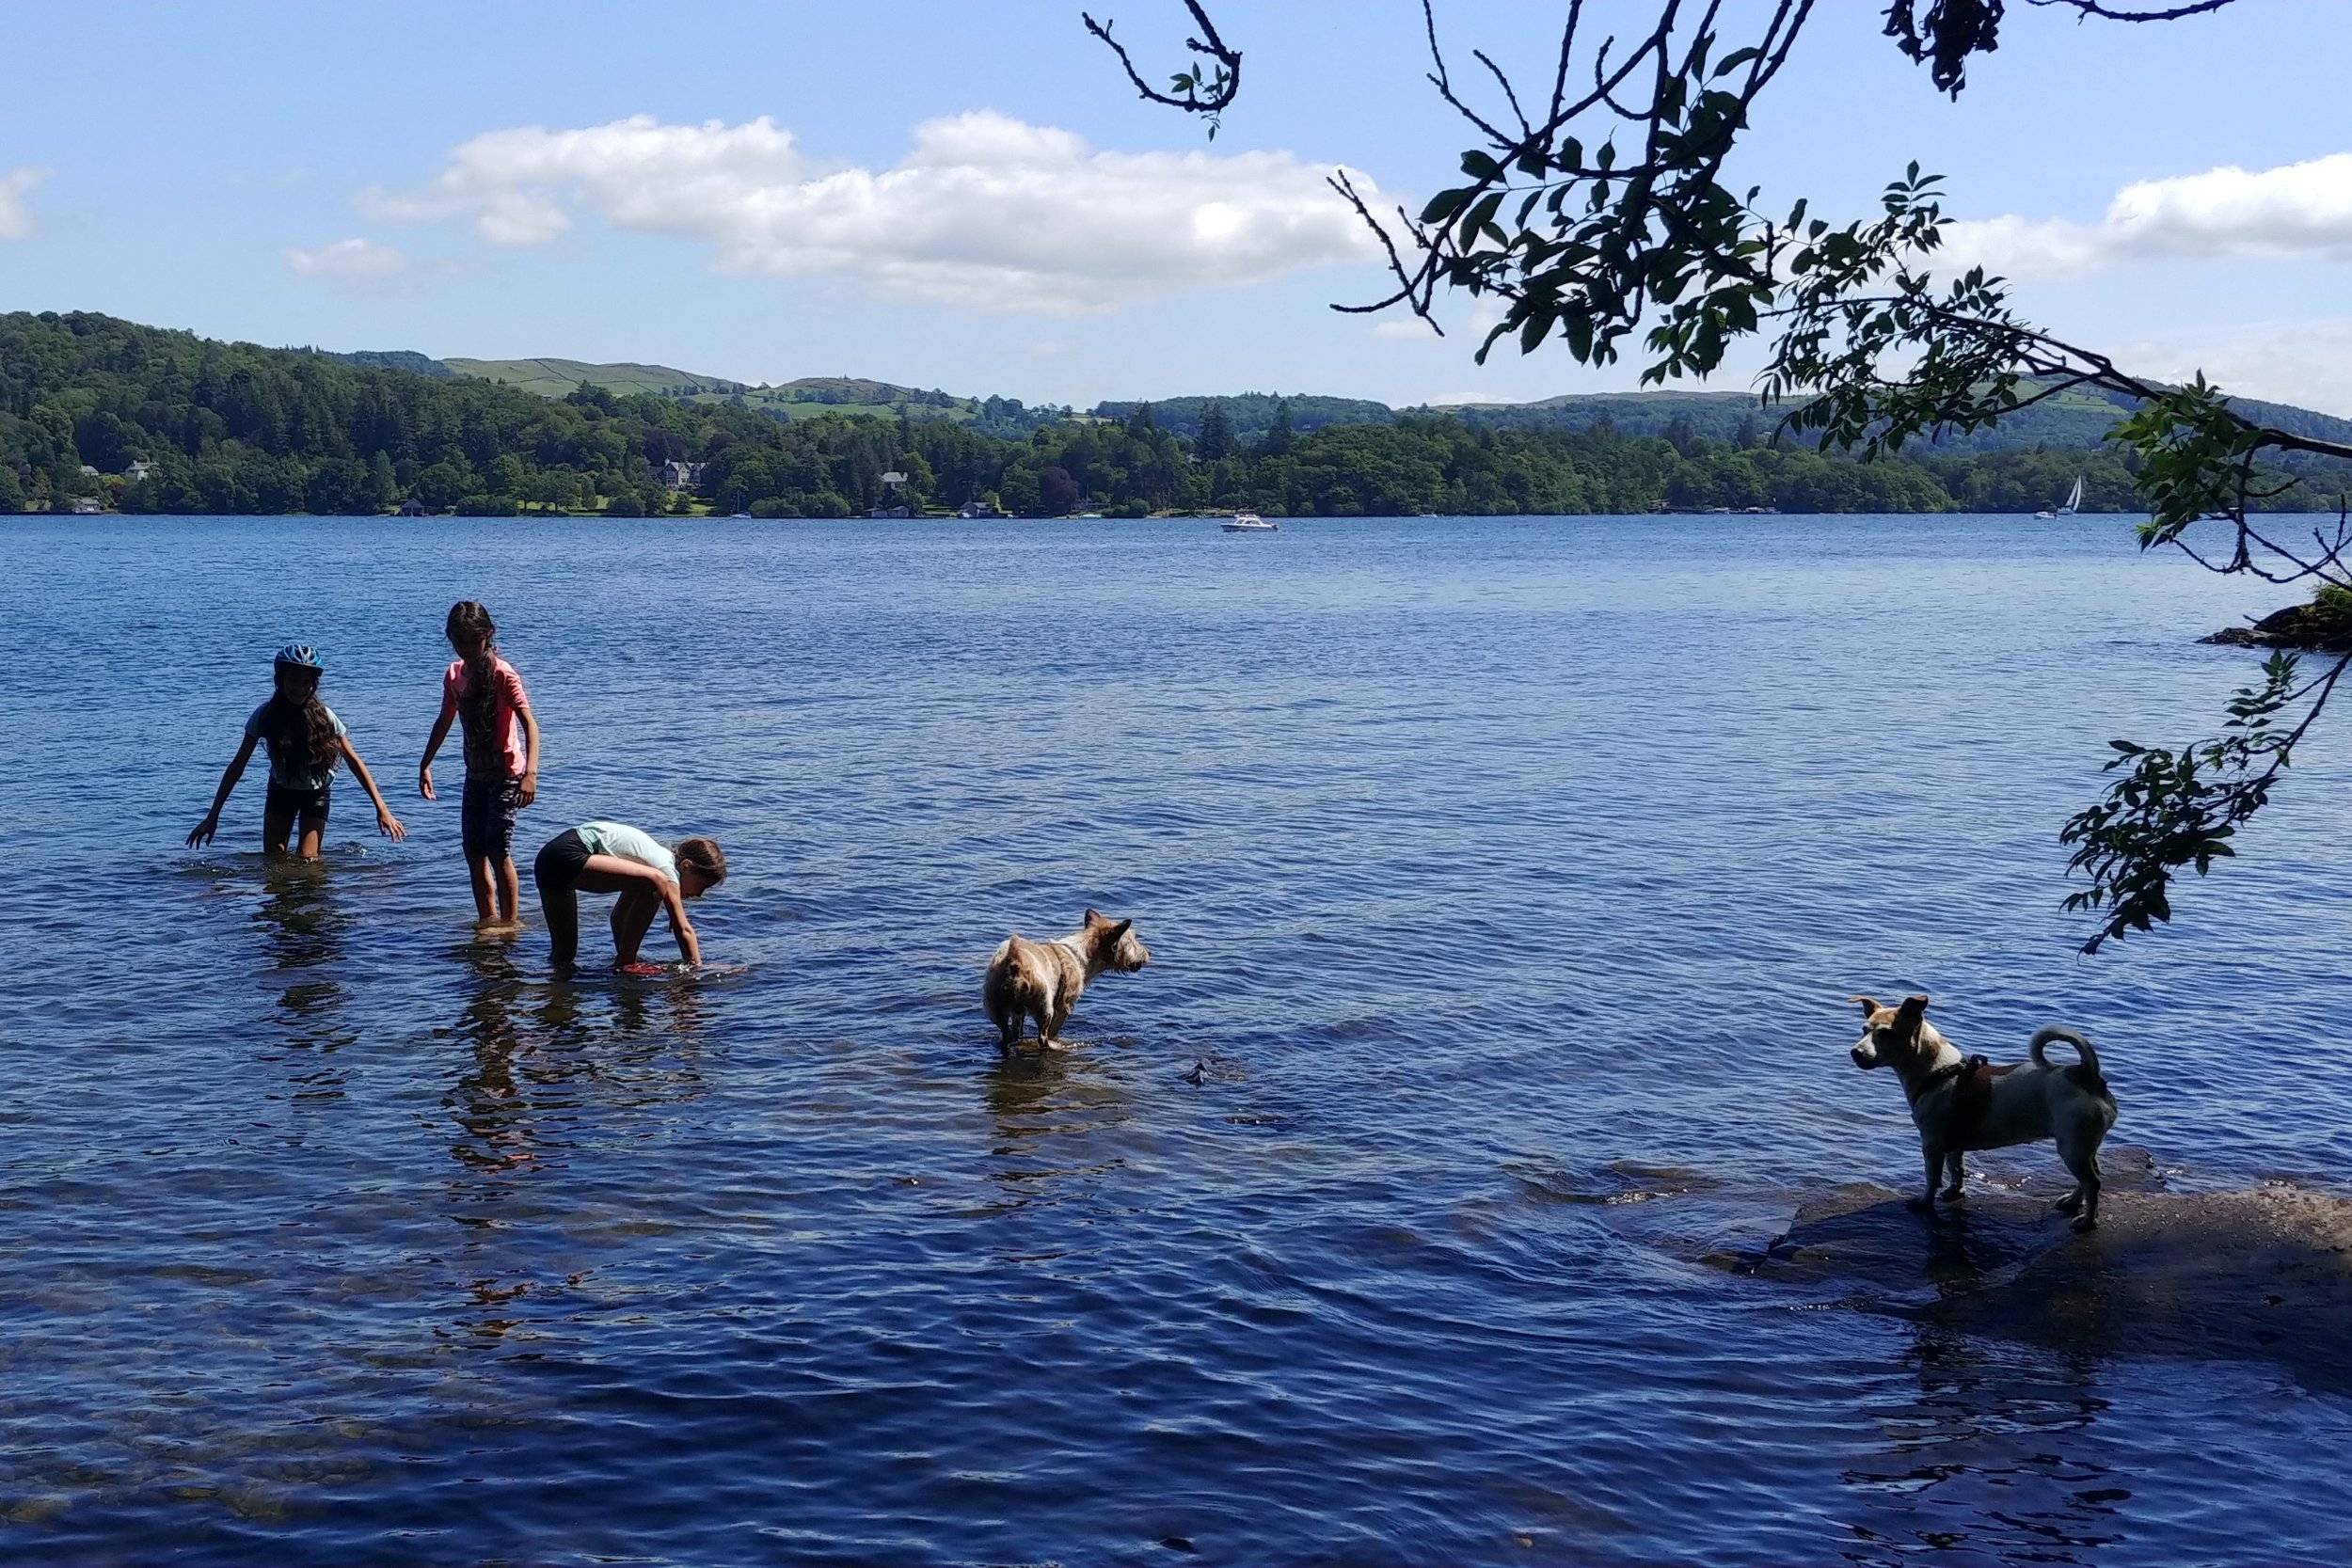 Sunny enough to paddle!